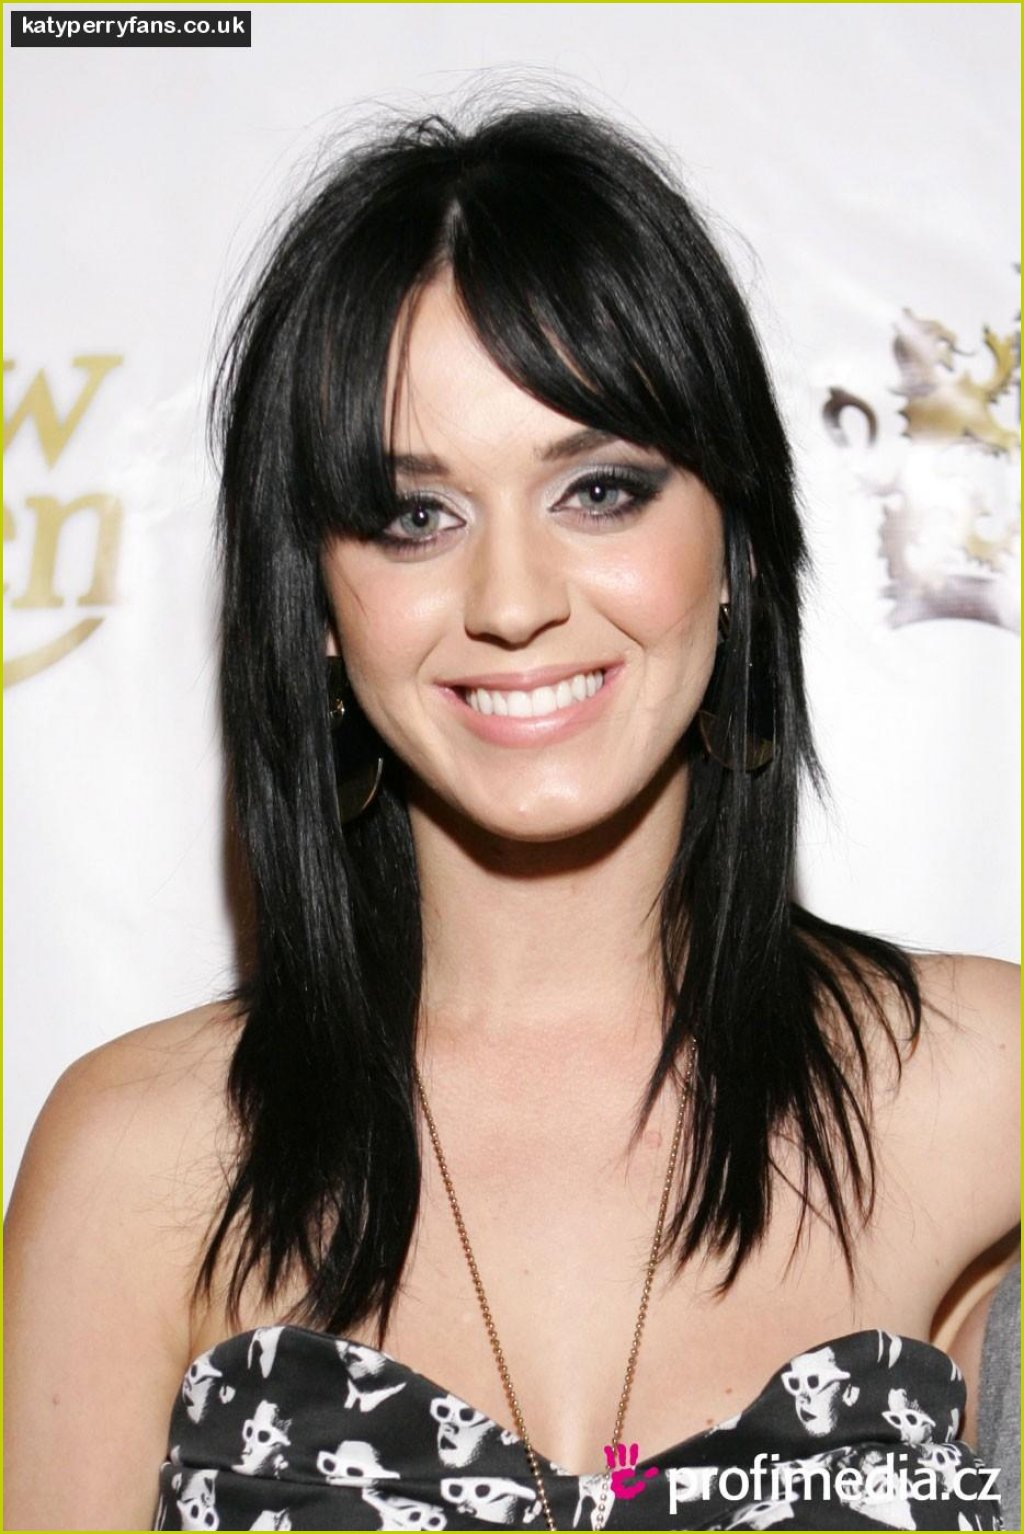 Katy Perry Katy Perry Hot Pictures-1878